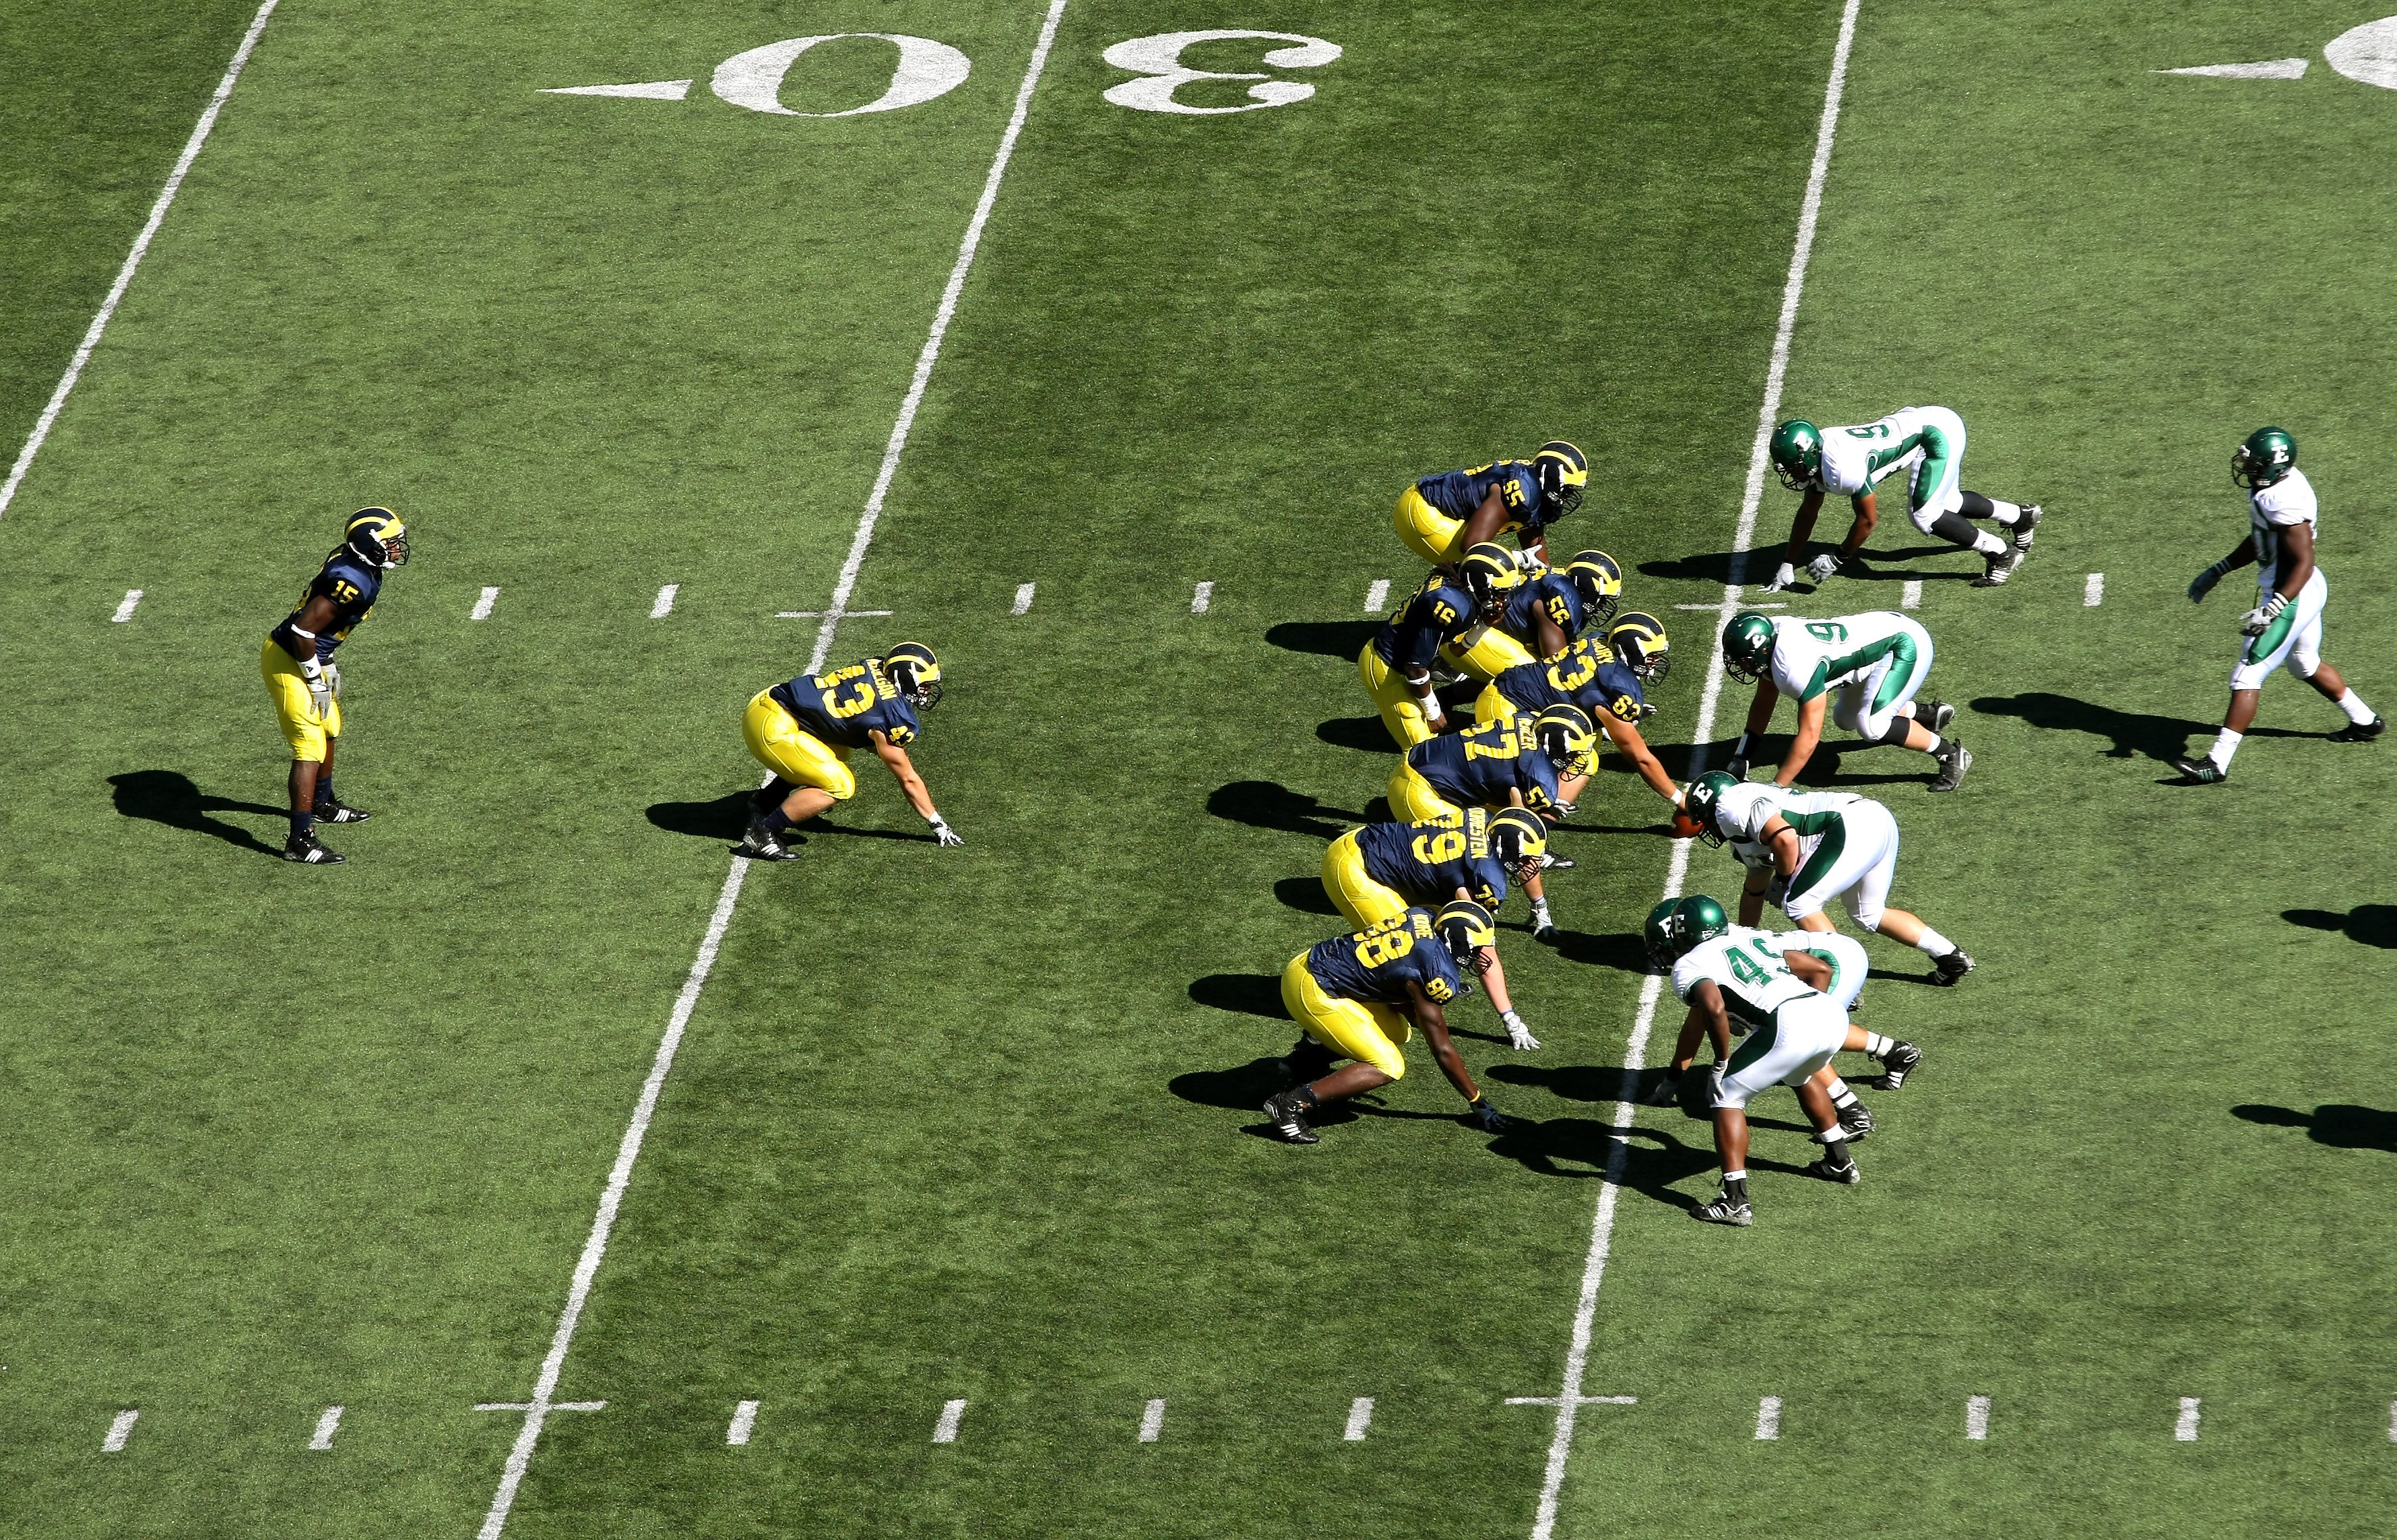 ANN ARBOR, MI - SEPTEMBER 19:  The Michigan Wolverines  offense sets on the line of scrimmage agaisnt the Eastern Michigan Eagles at Michigan Stadium on September 19, 2009 in Ann Arbor, Michigan.  Michigan won 45-17.  (Photo by Stephen Dunn/Getty Images)